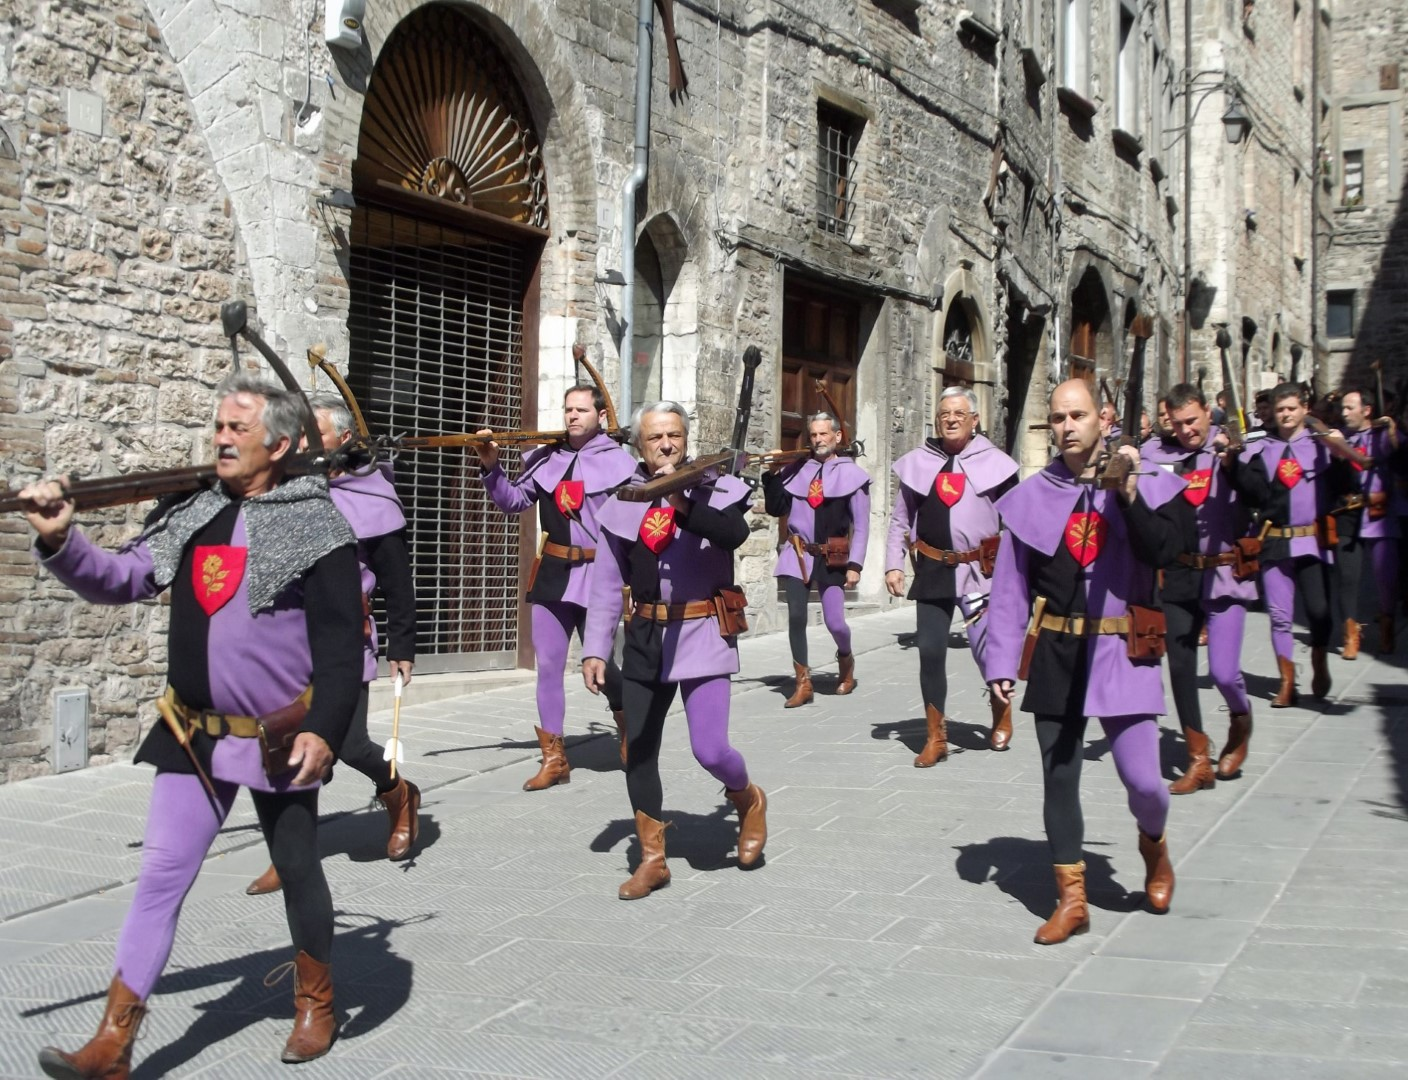 Men in purple and black carrying crossbows